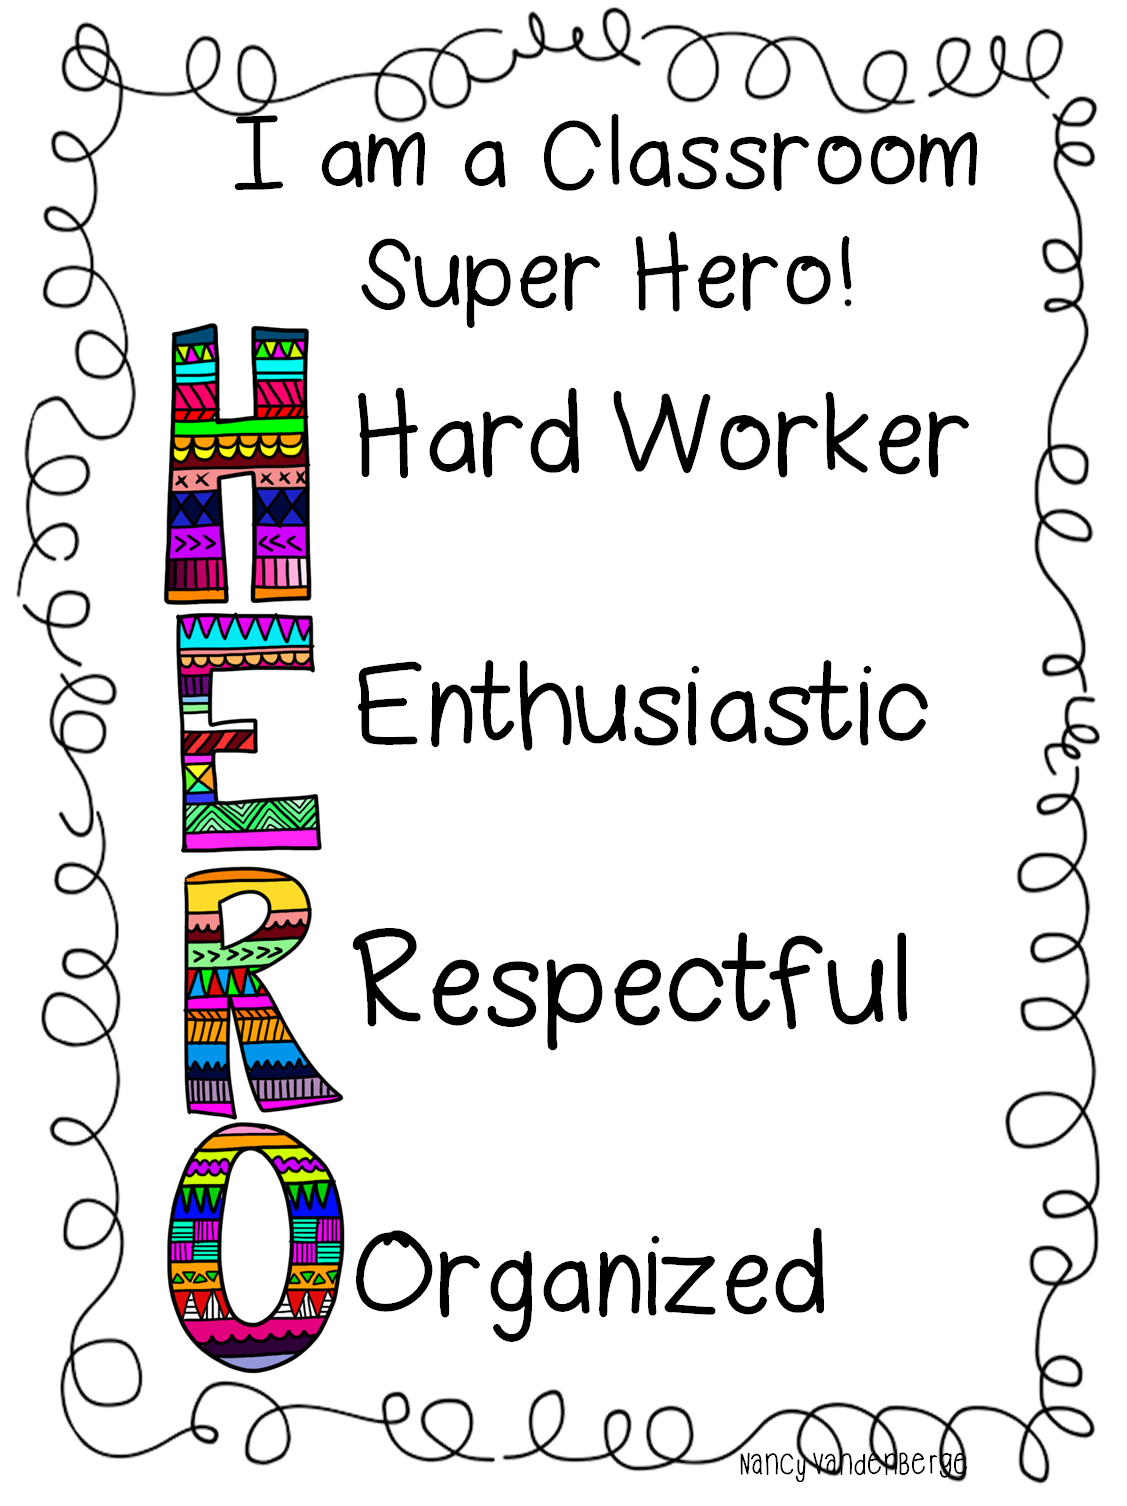 Workbooks superhero worksheets for preschool : First Grade Wow: Superhero Unit to the Rescue! | Classroom Ideas ...